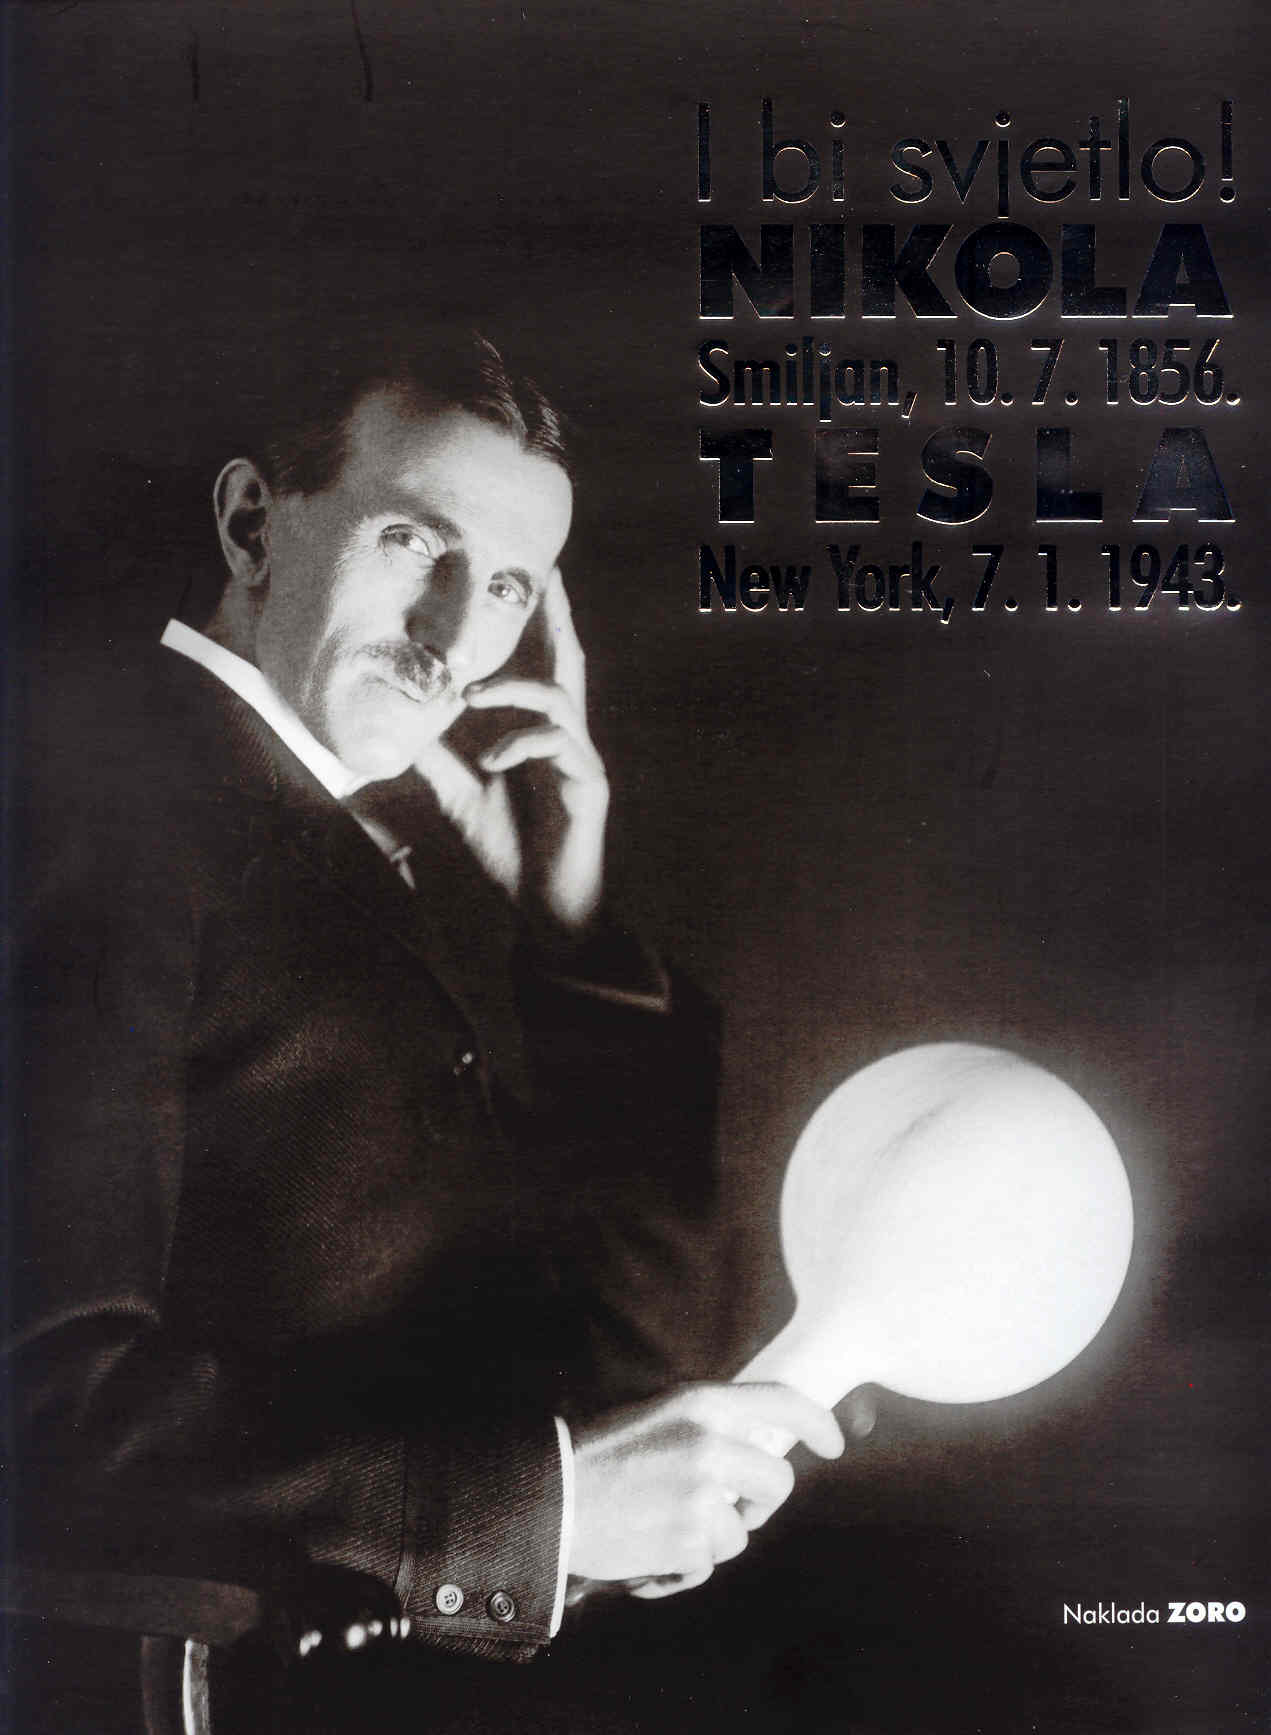 'The hand of Nicolas Tesla' : the first photograph ever taken by the light of the future! Nikola-tesla